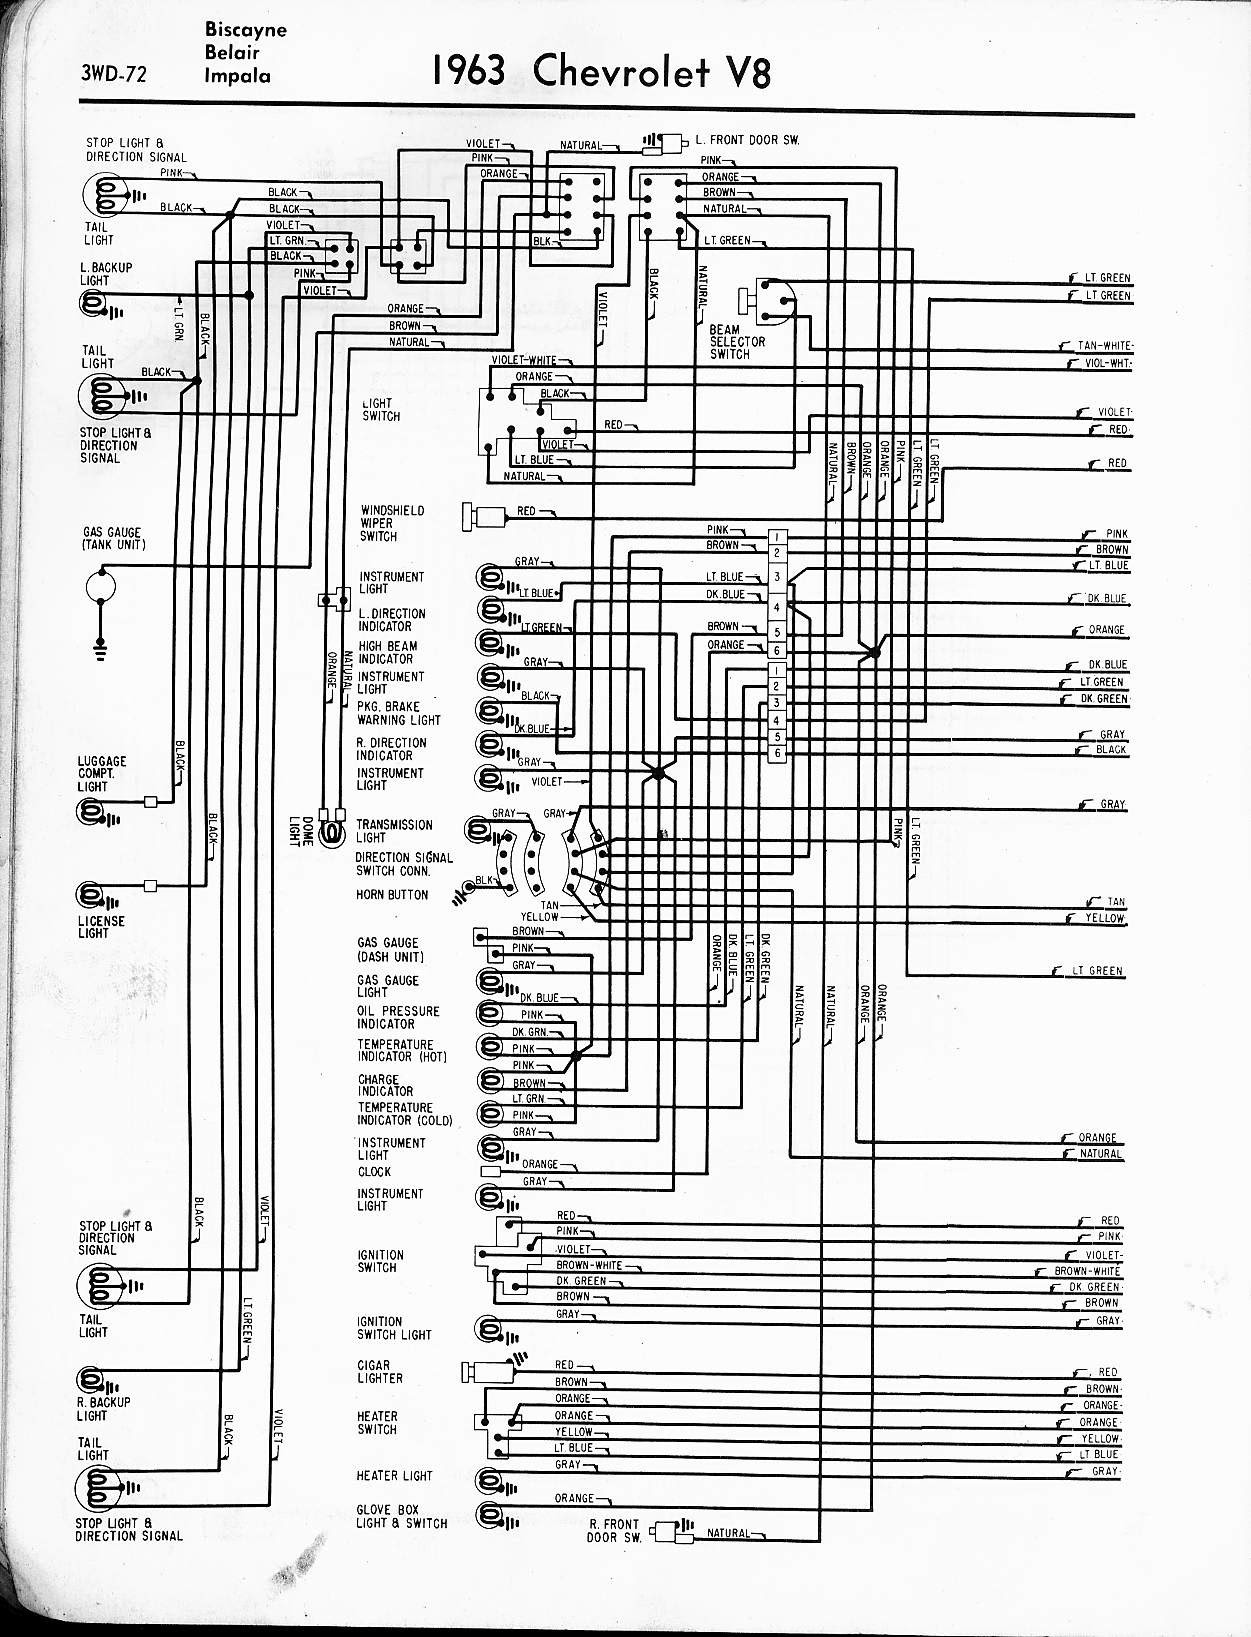 2005 Chevy Impala Wiring Diagram from lh5.googleusercontent.com